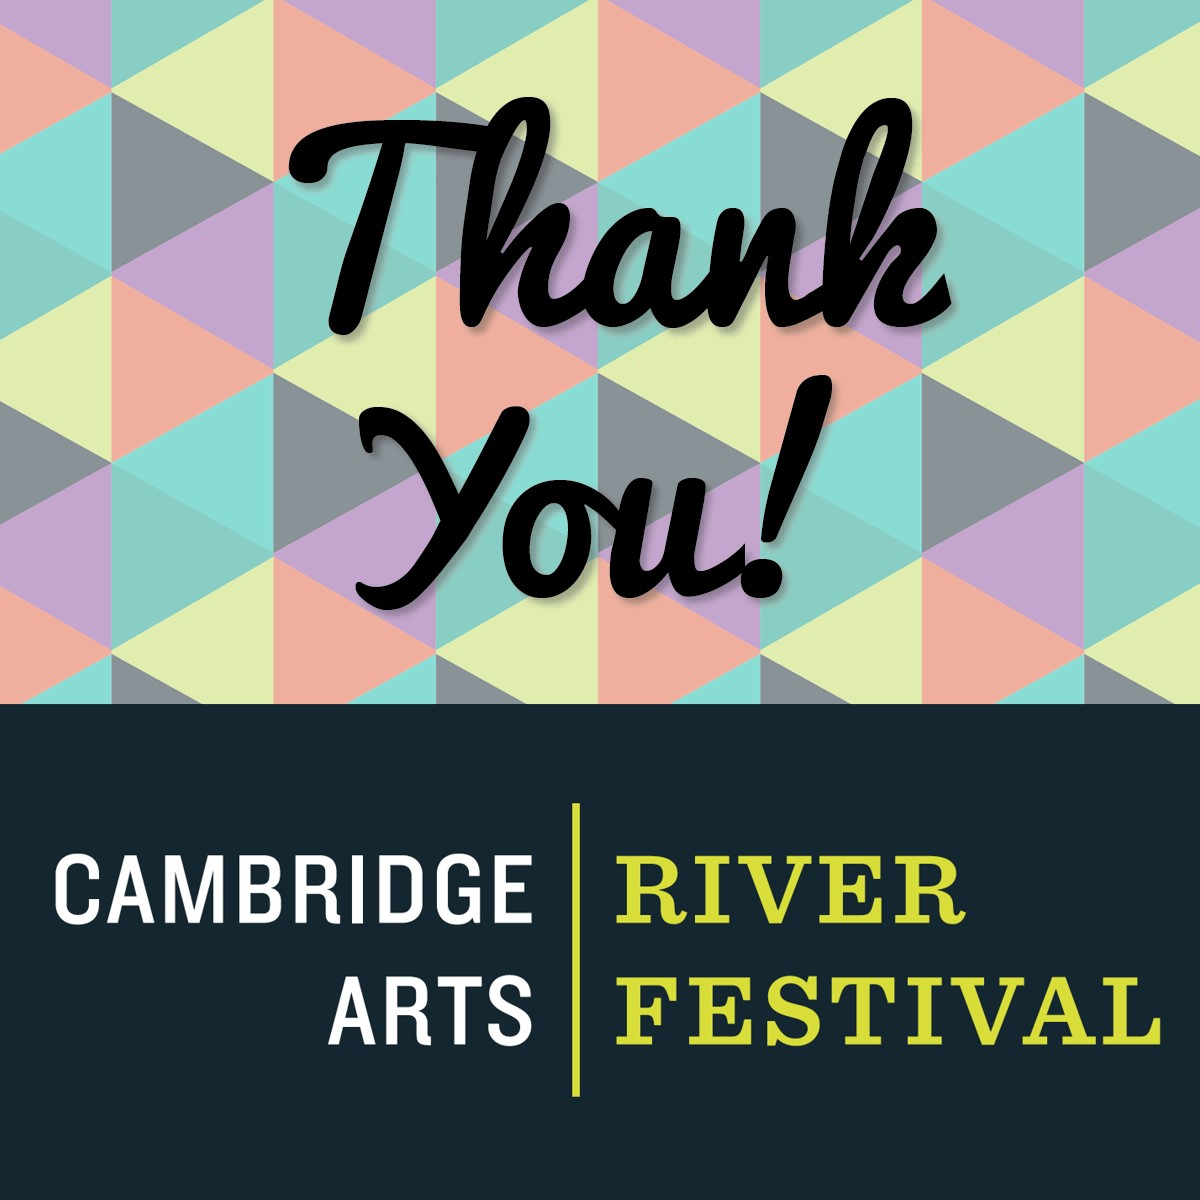 Thank You From Cambridge Arts